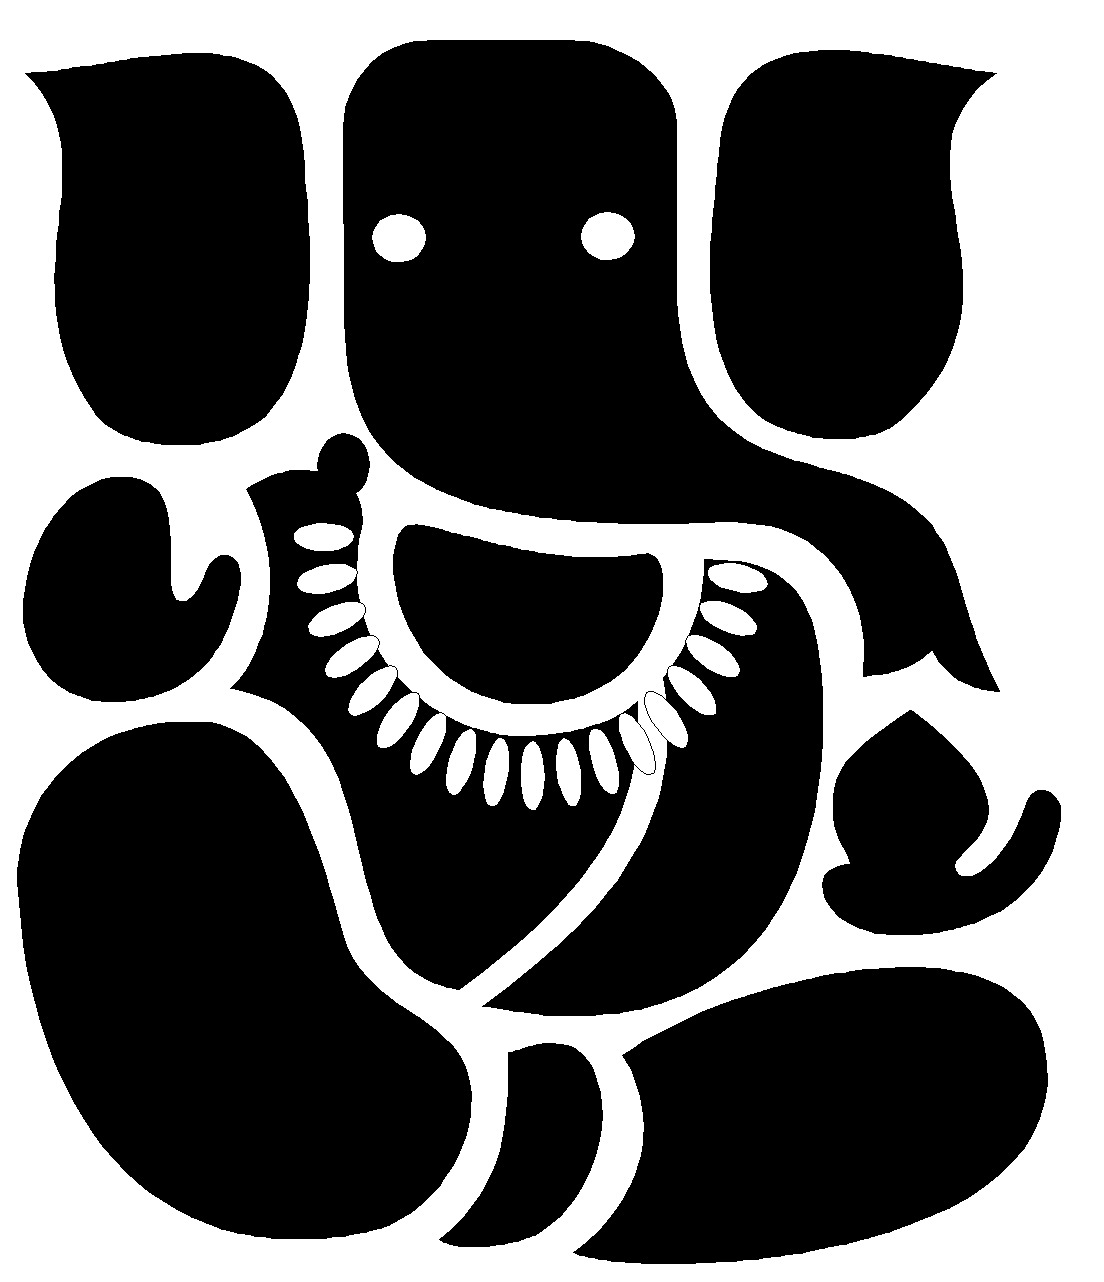 Free Ganesh Cliparts, Download Free Clip Art, Free Clip Art.